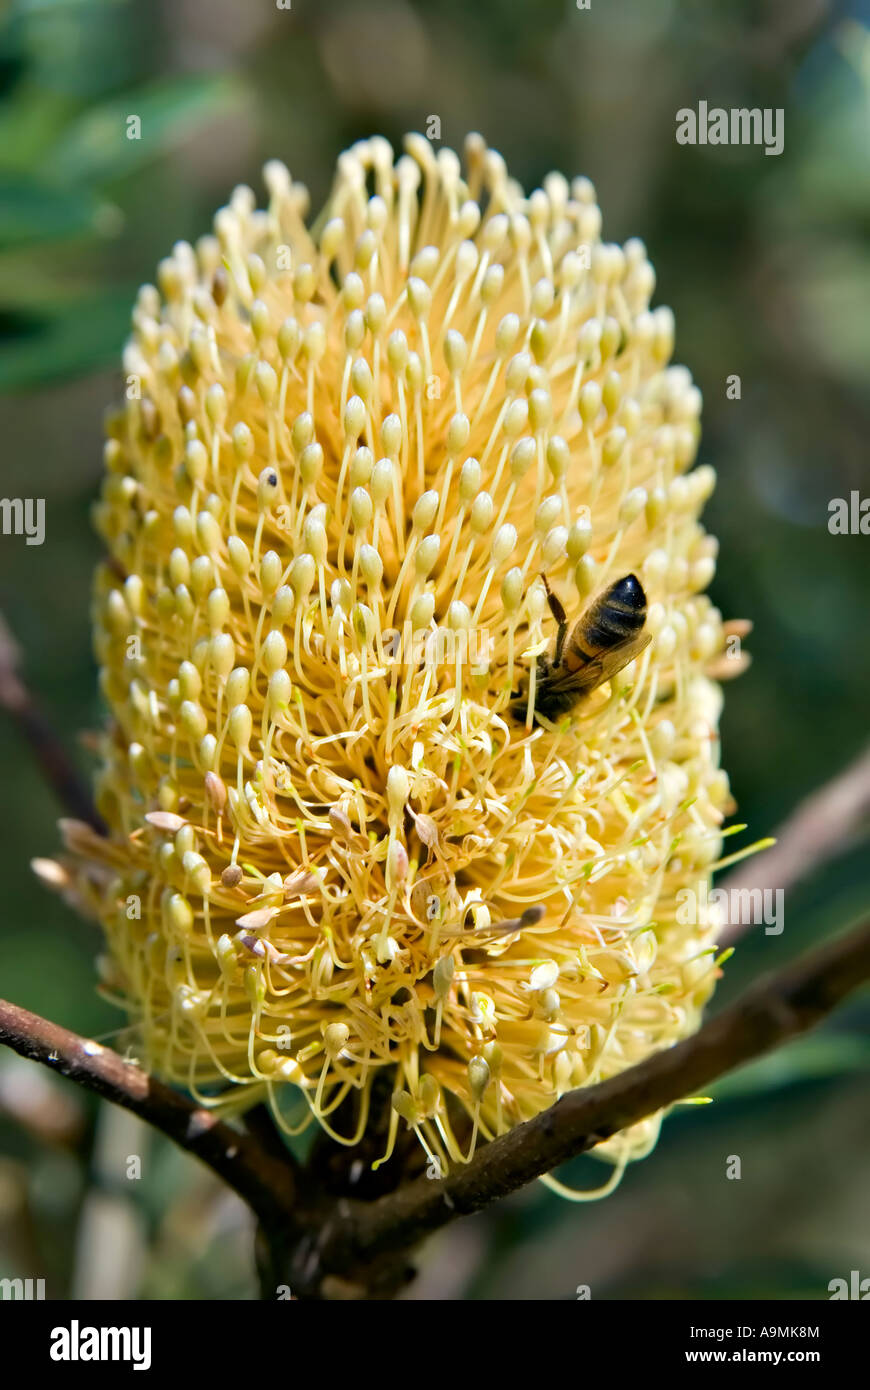 a bee is upside in collecting pollen from a big yellow banksia flower - Stock Image